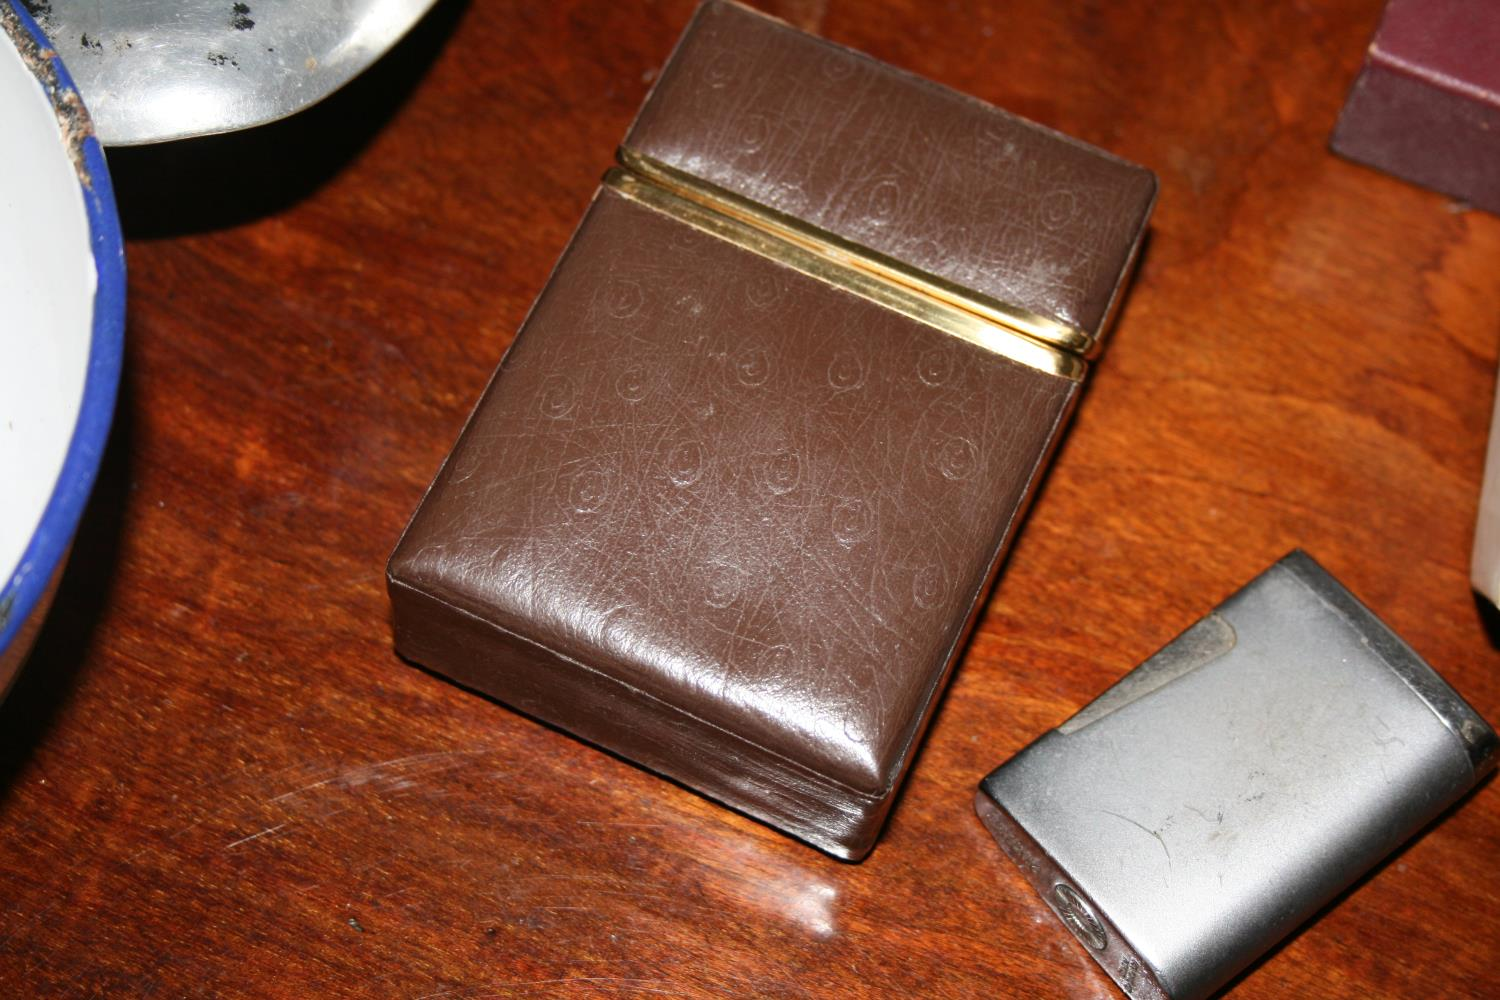 Very quirky collection of vintage medical paraphernalia including cut throat razor (Puma Gold). - Image 5 of 5